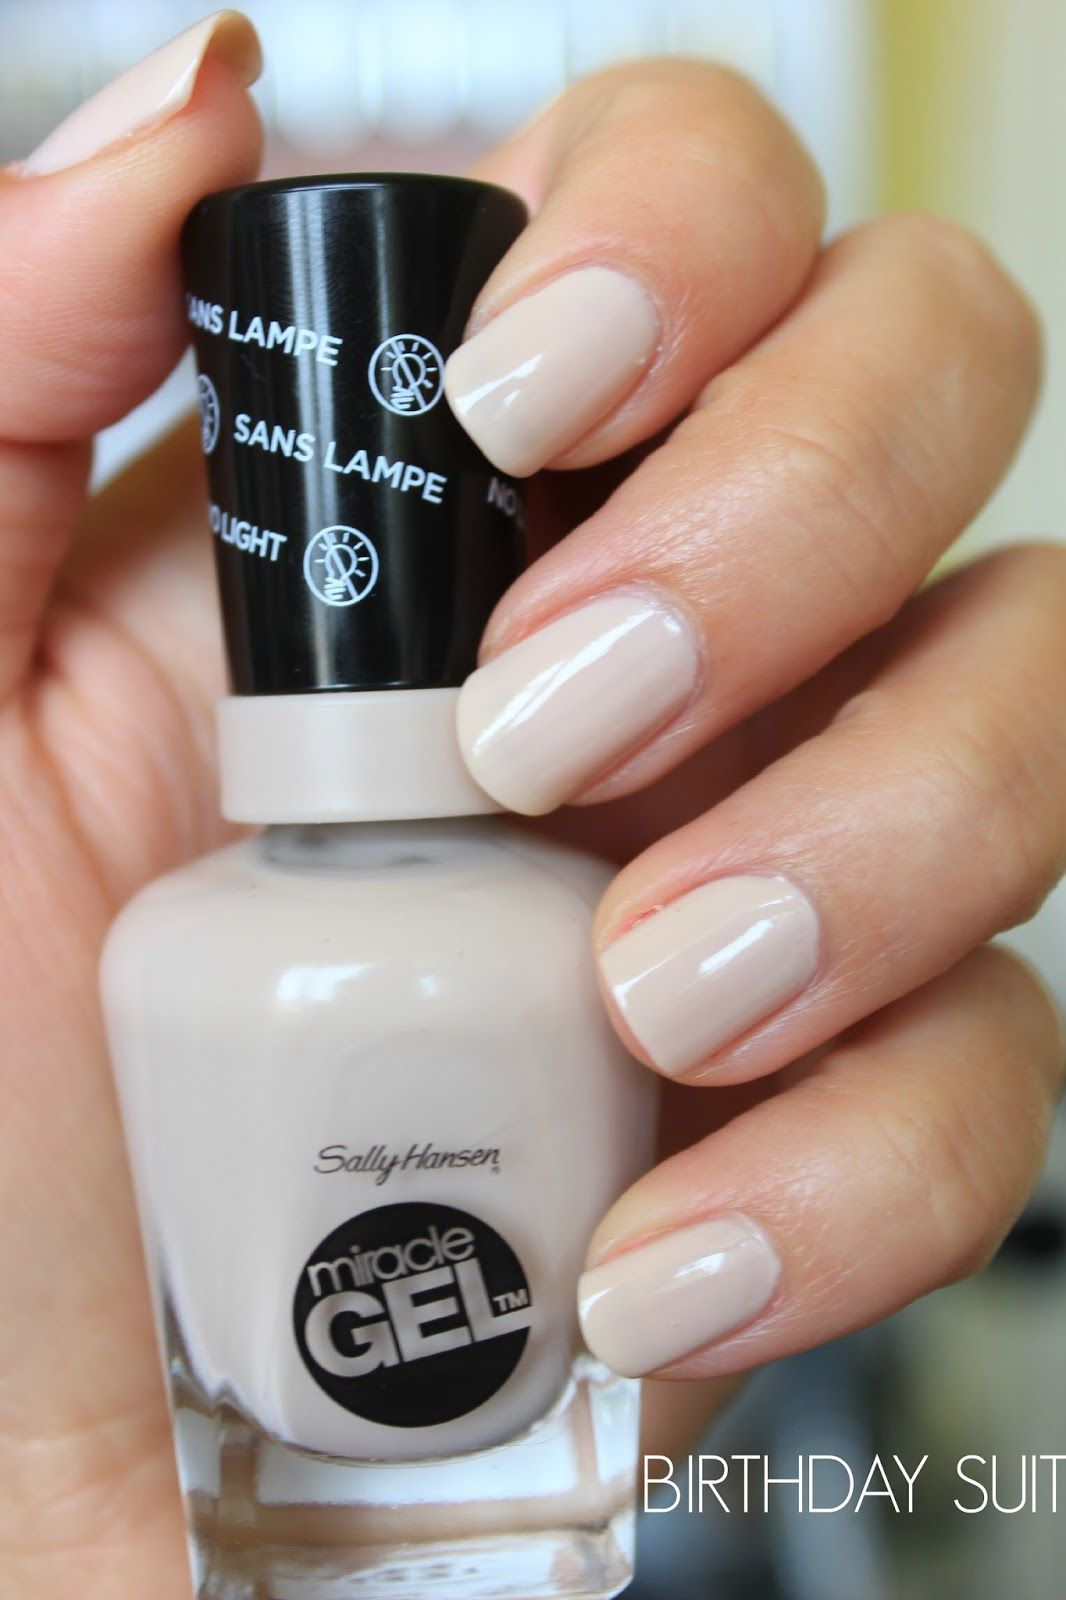 Sally hansen miracle gel nail polish birthday suit trying this for sally hansen miracle gel nail polish birthday suit trying this for the 1st time solutioingenieria Choice Image